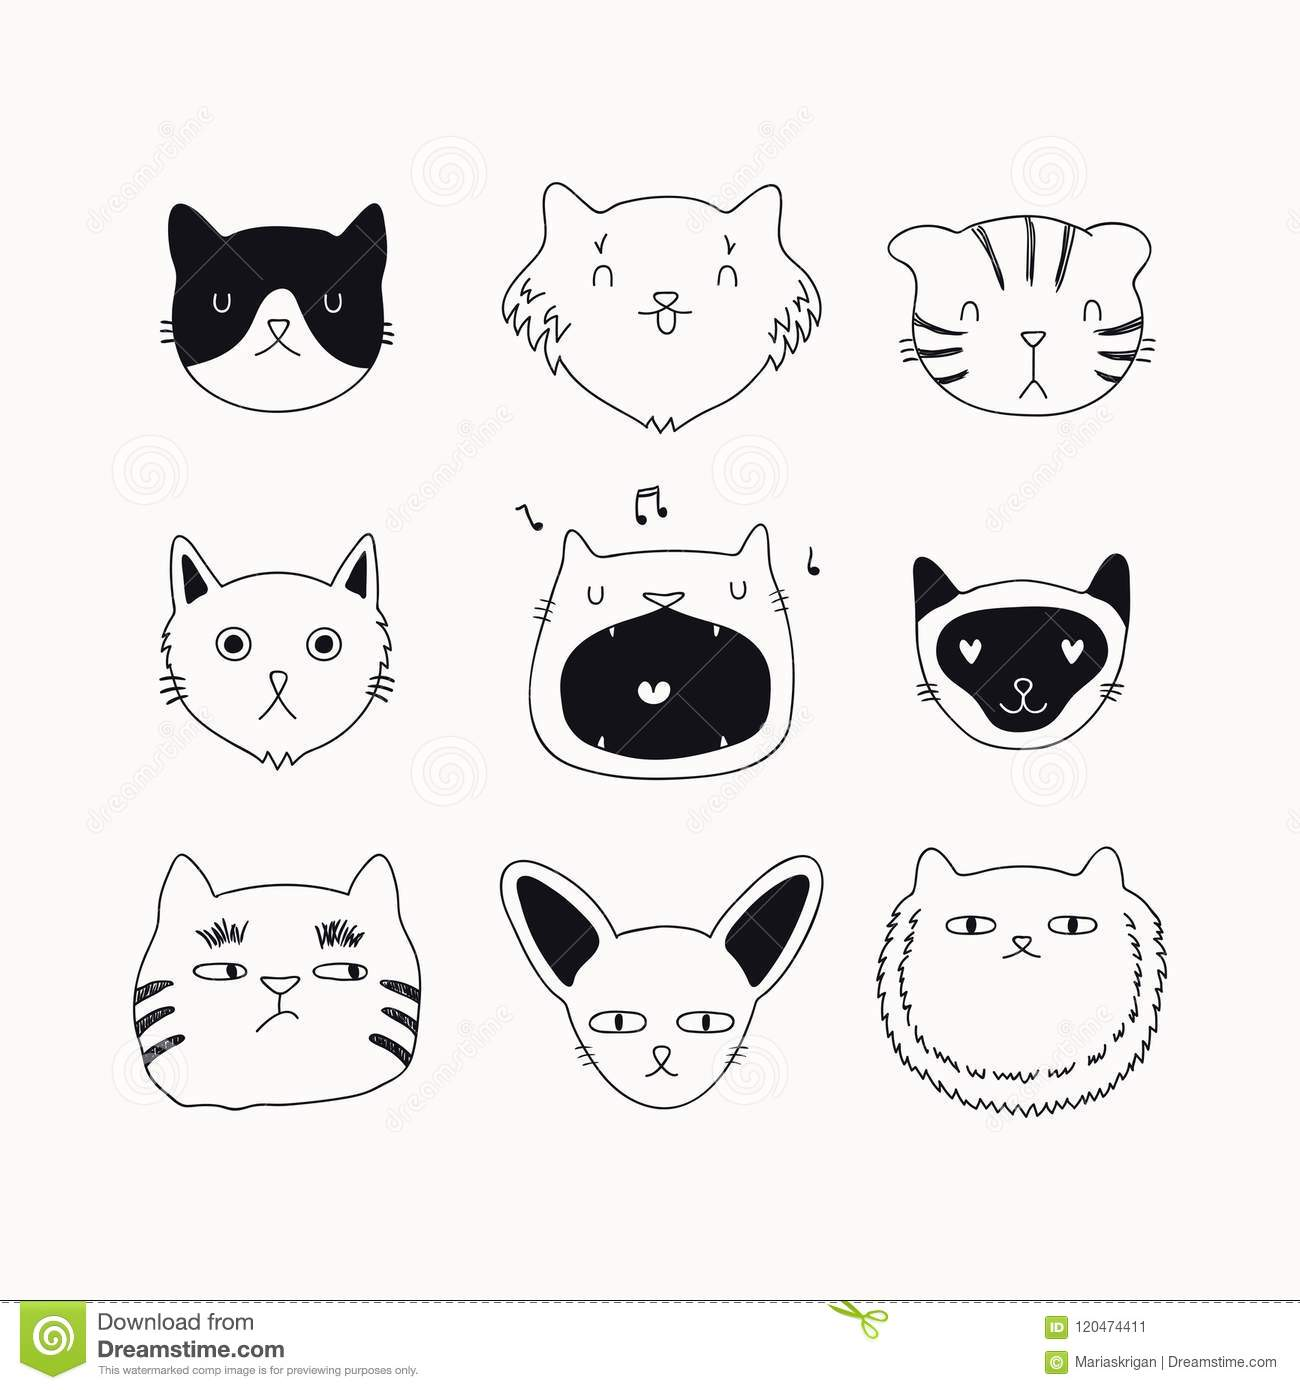 Cute Cat Black And White Doodles Set Stock Vector Illustration Of Different Background 120474411